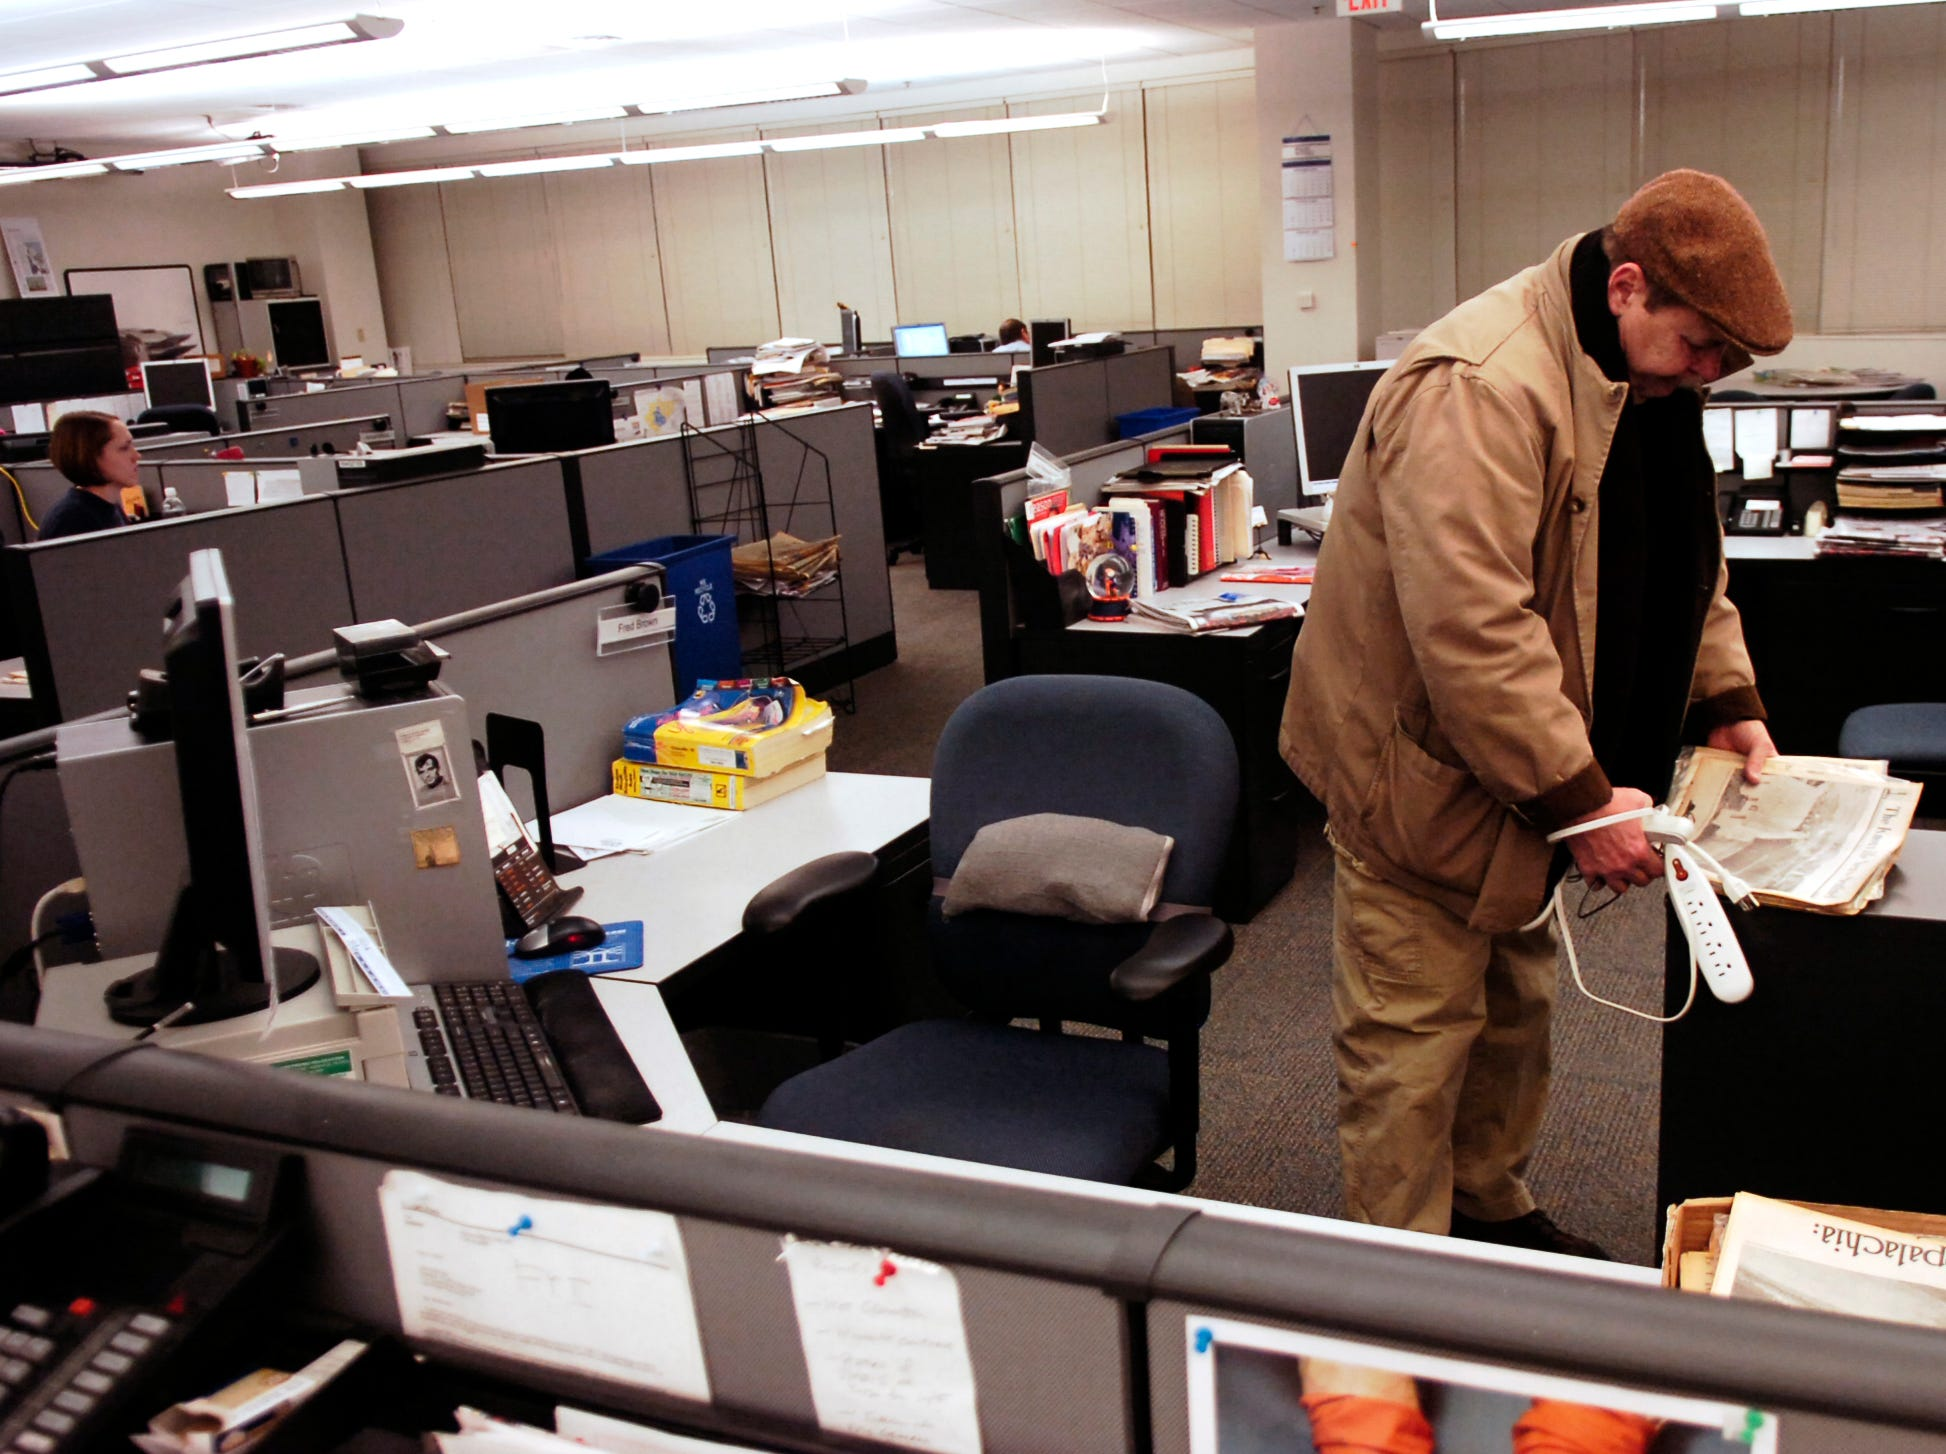 KNS senior writer Fred Brown leaves the newsroom for the final time on Friday, Jan. 18, 2008. He retired after a 45-year career that began at the Pensacola News Journal.